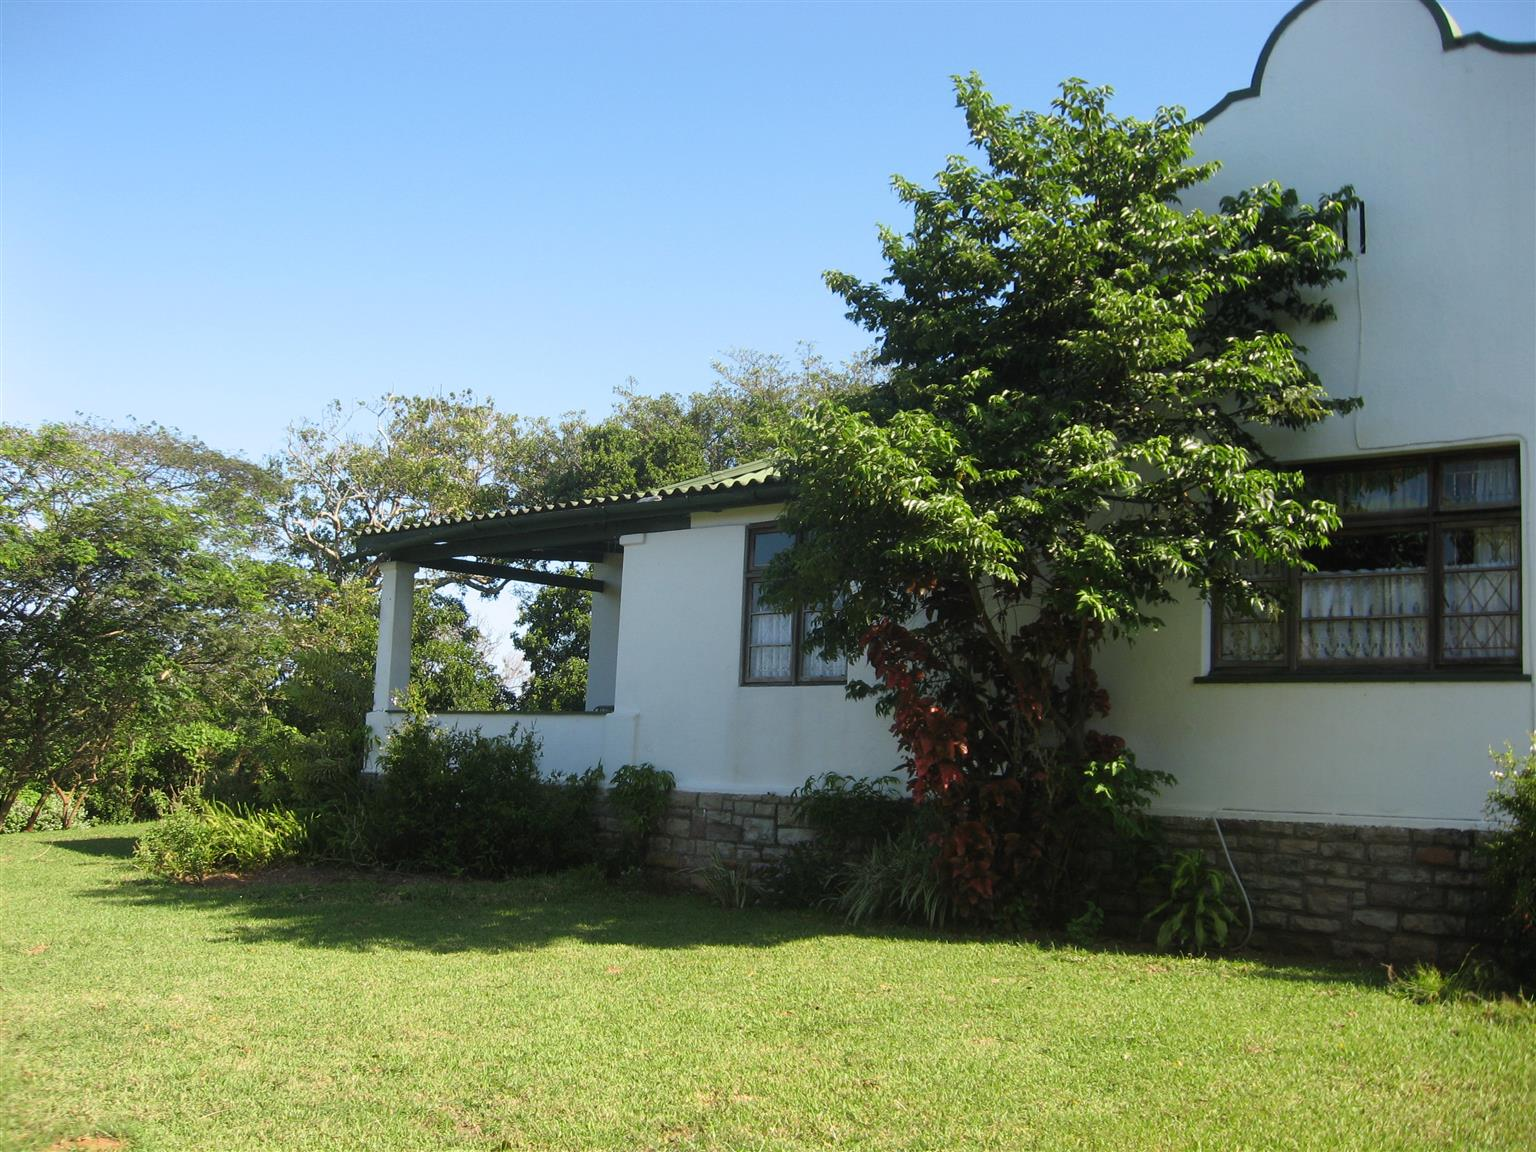 DUTCH GABLE OOZING WITH CHARM AND POTENTIAL 4 BEDROOM HOUSE PLUS SEPARATE 1 BEDROOM COTTAGE R990000